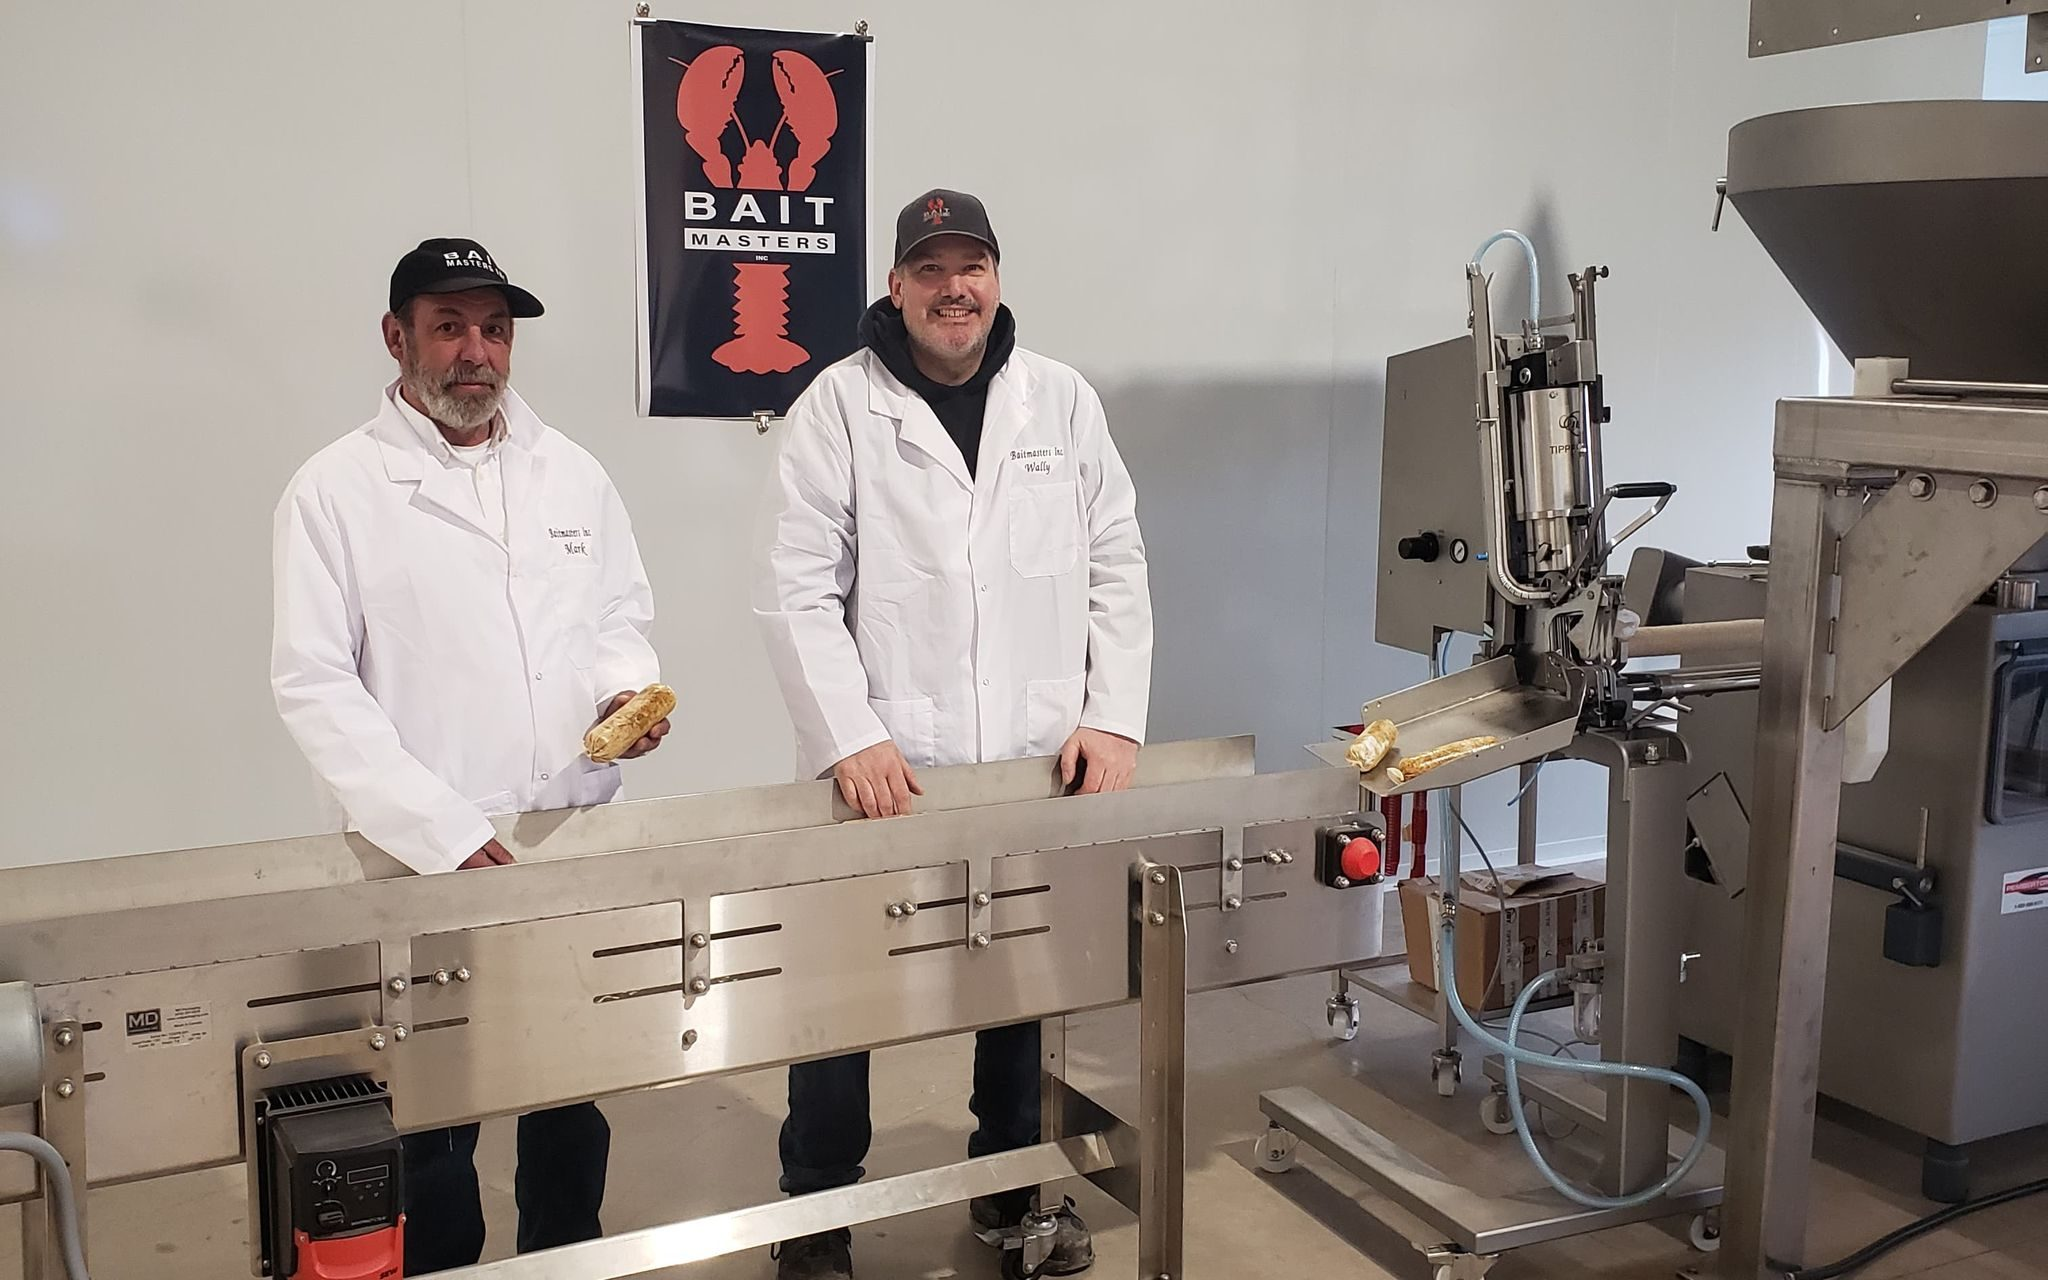 CEOs Mark Prevost and Wally MacPhee at a production machine holding bait